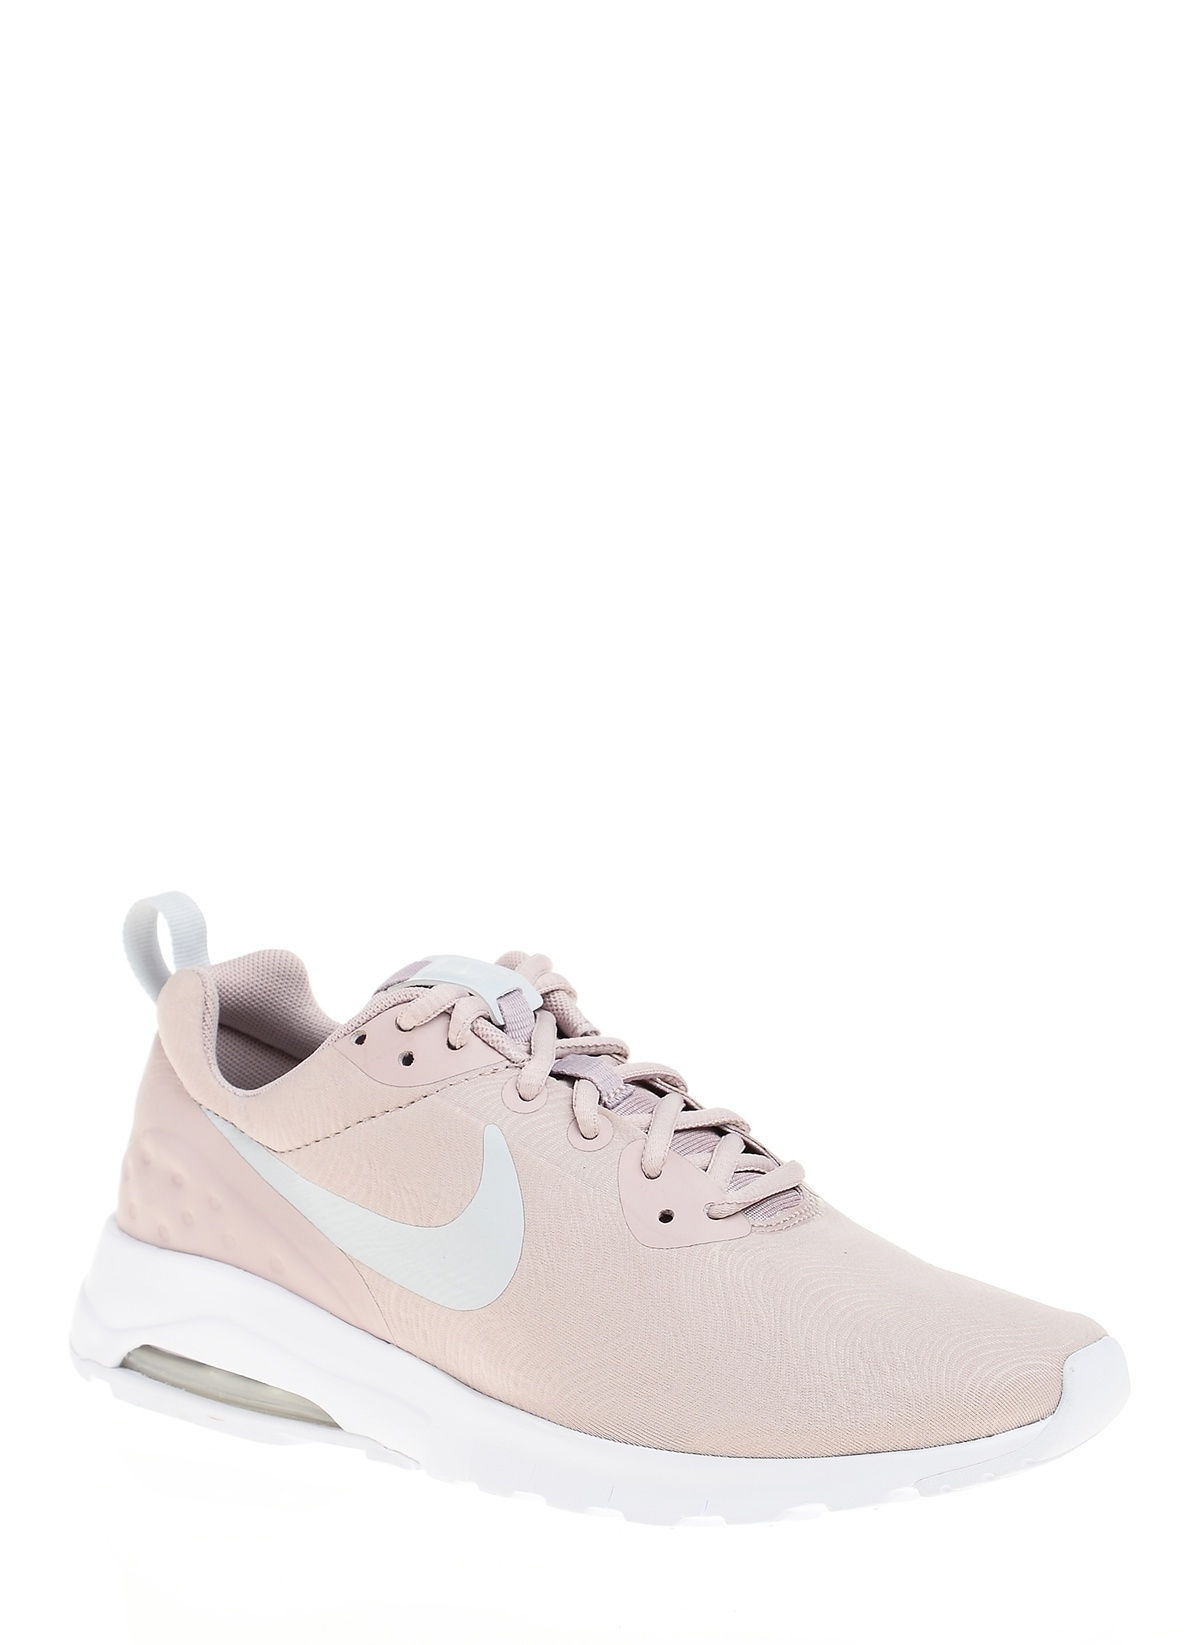 844895 604 Wmns Nike Air Max Motion Lw S